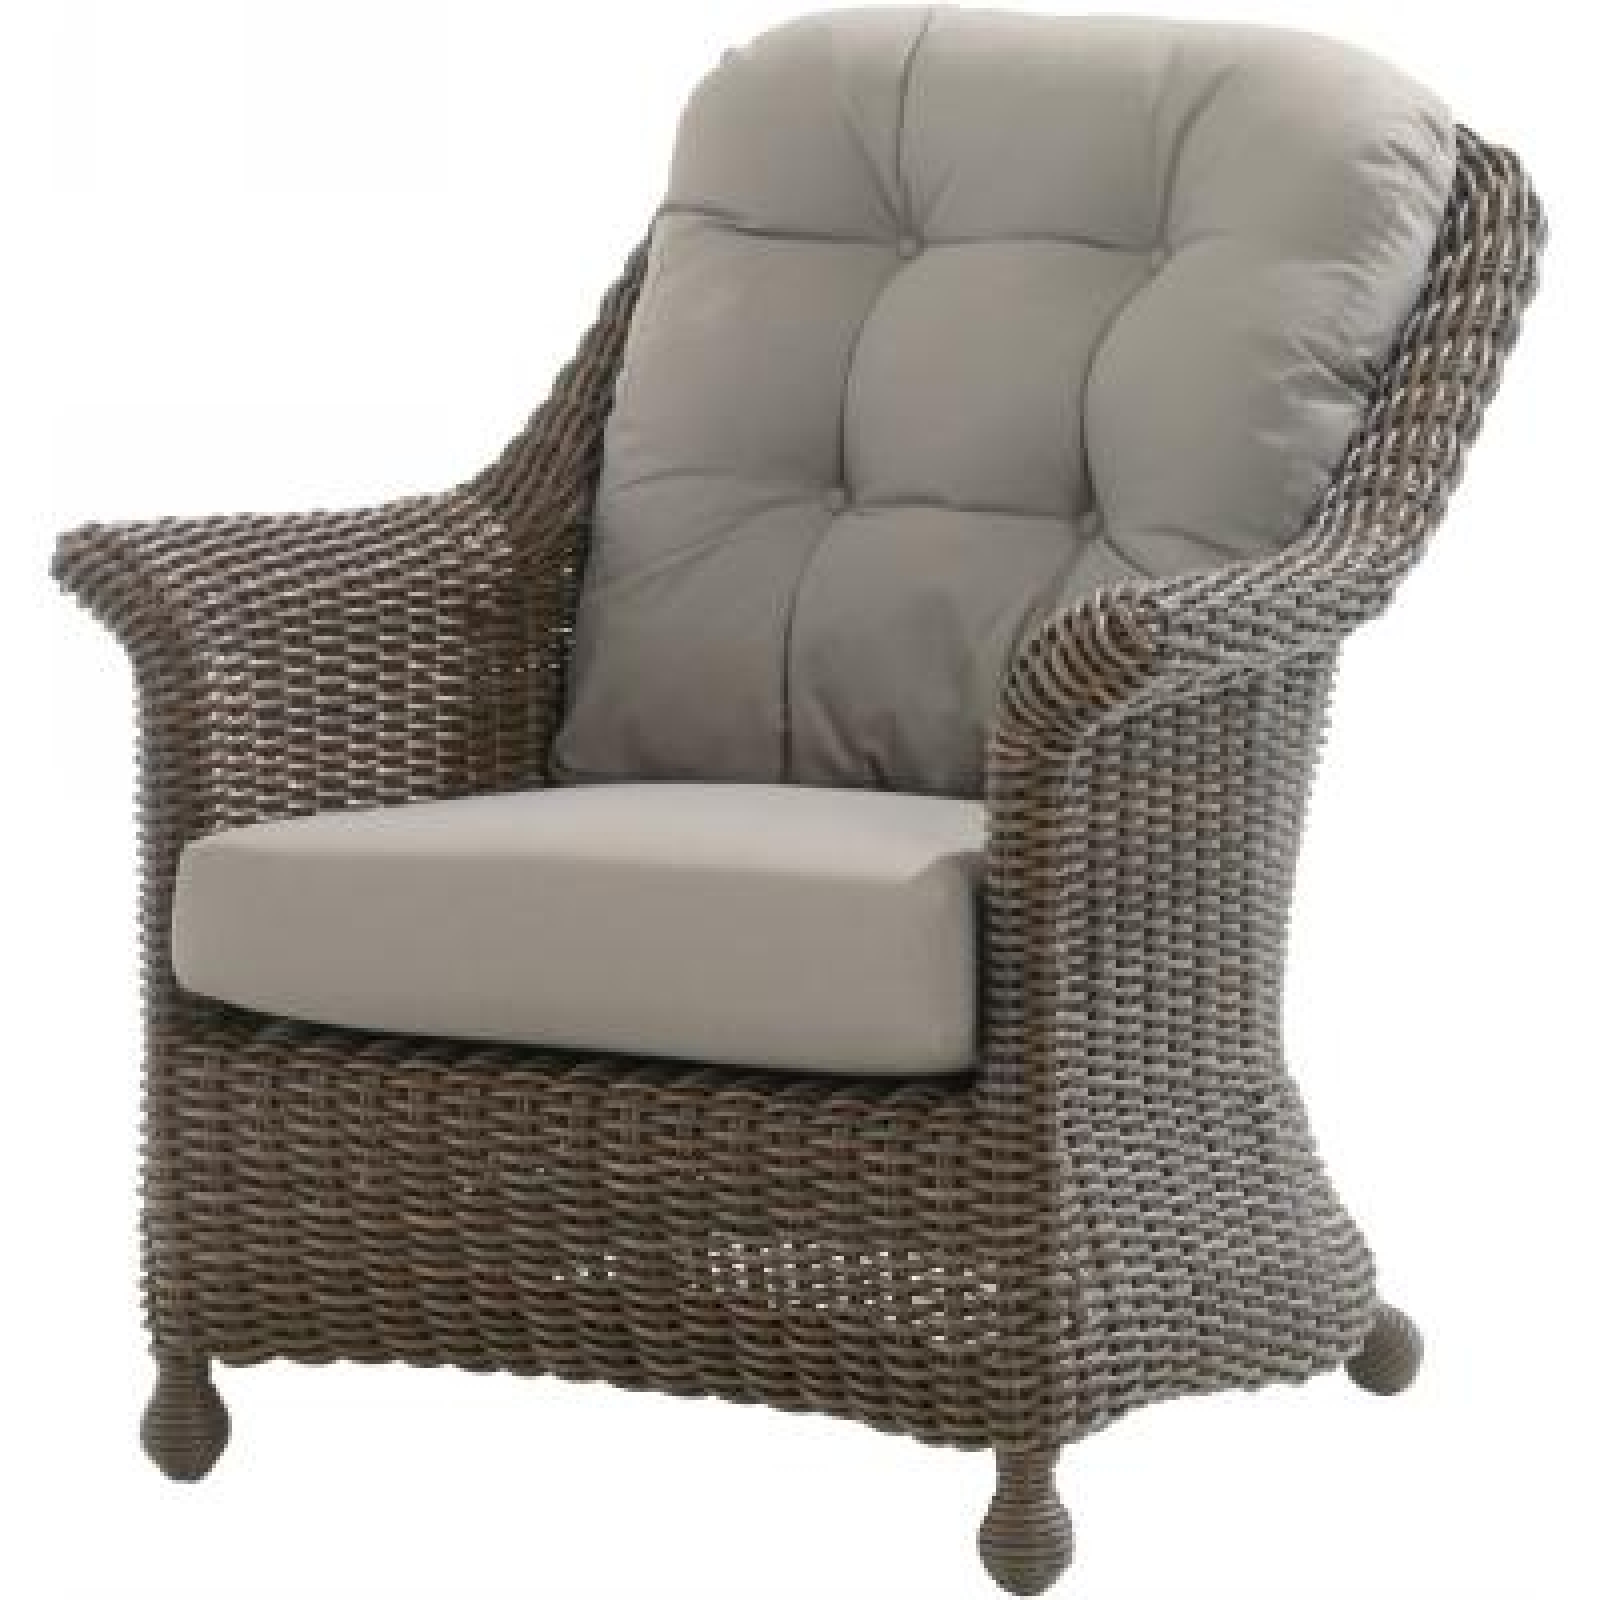 4Seasons Outdoor Madoera living Sessel Polyrattan Colonial inkl ...